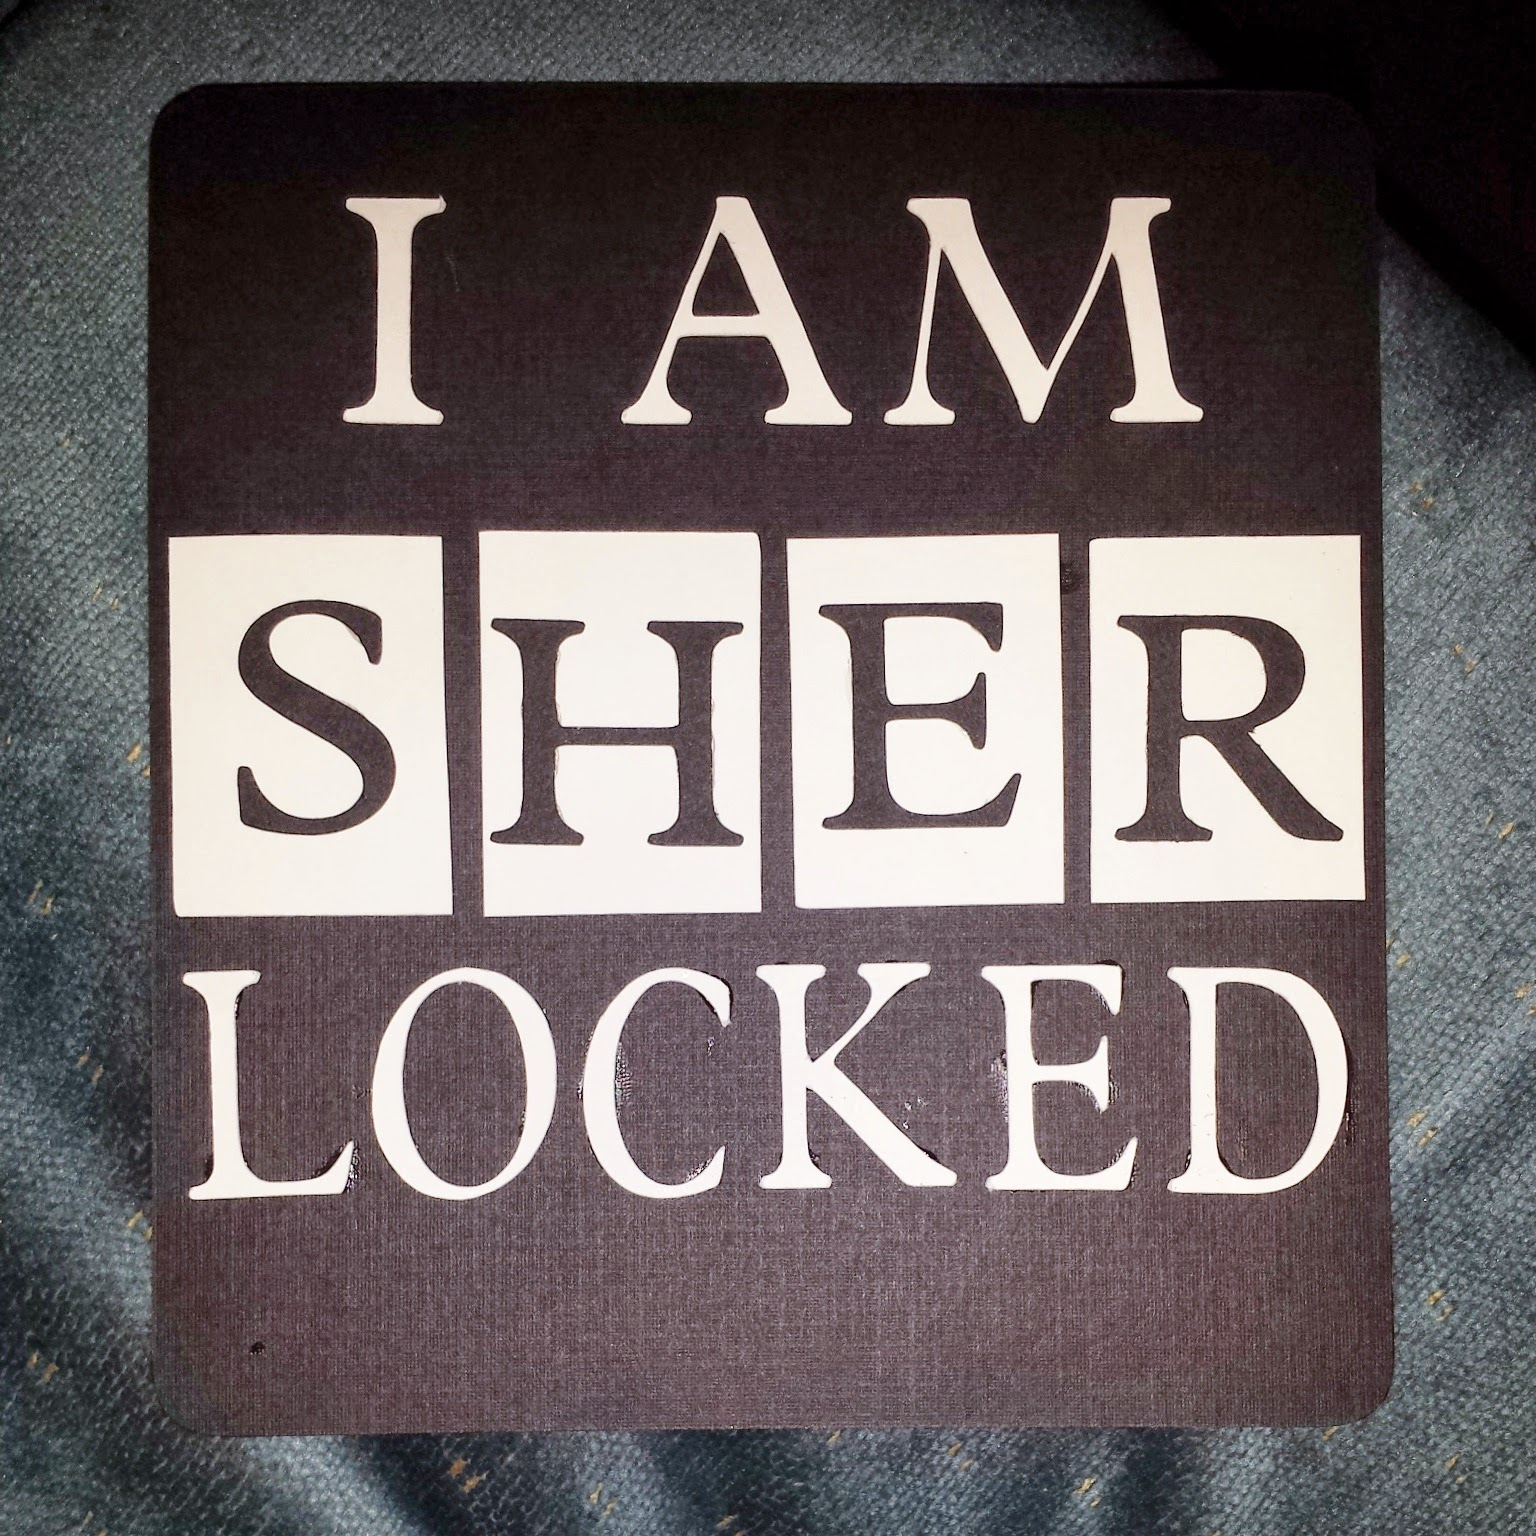 """I AM SHERLOCKED"" hand fan base for BBC Sherlock themed party favor"